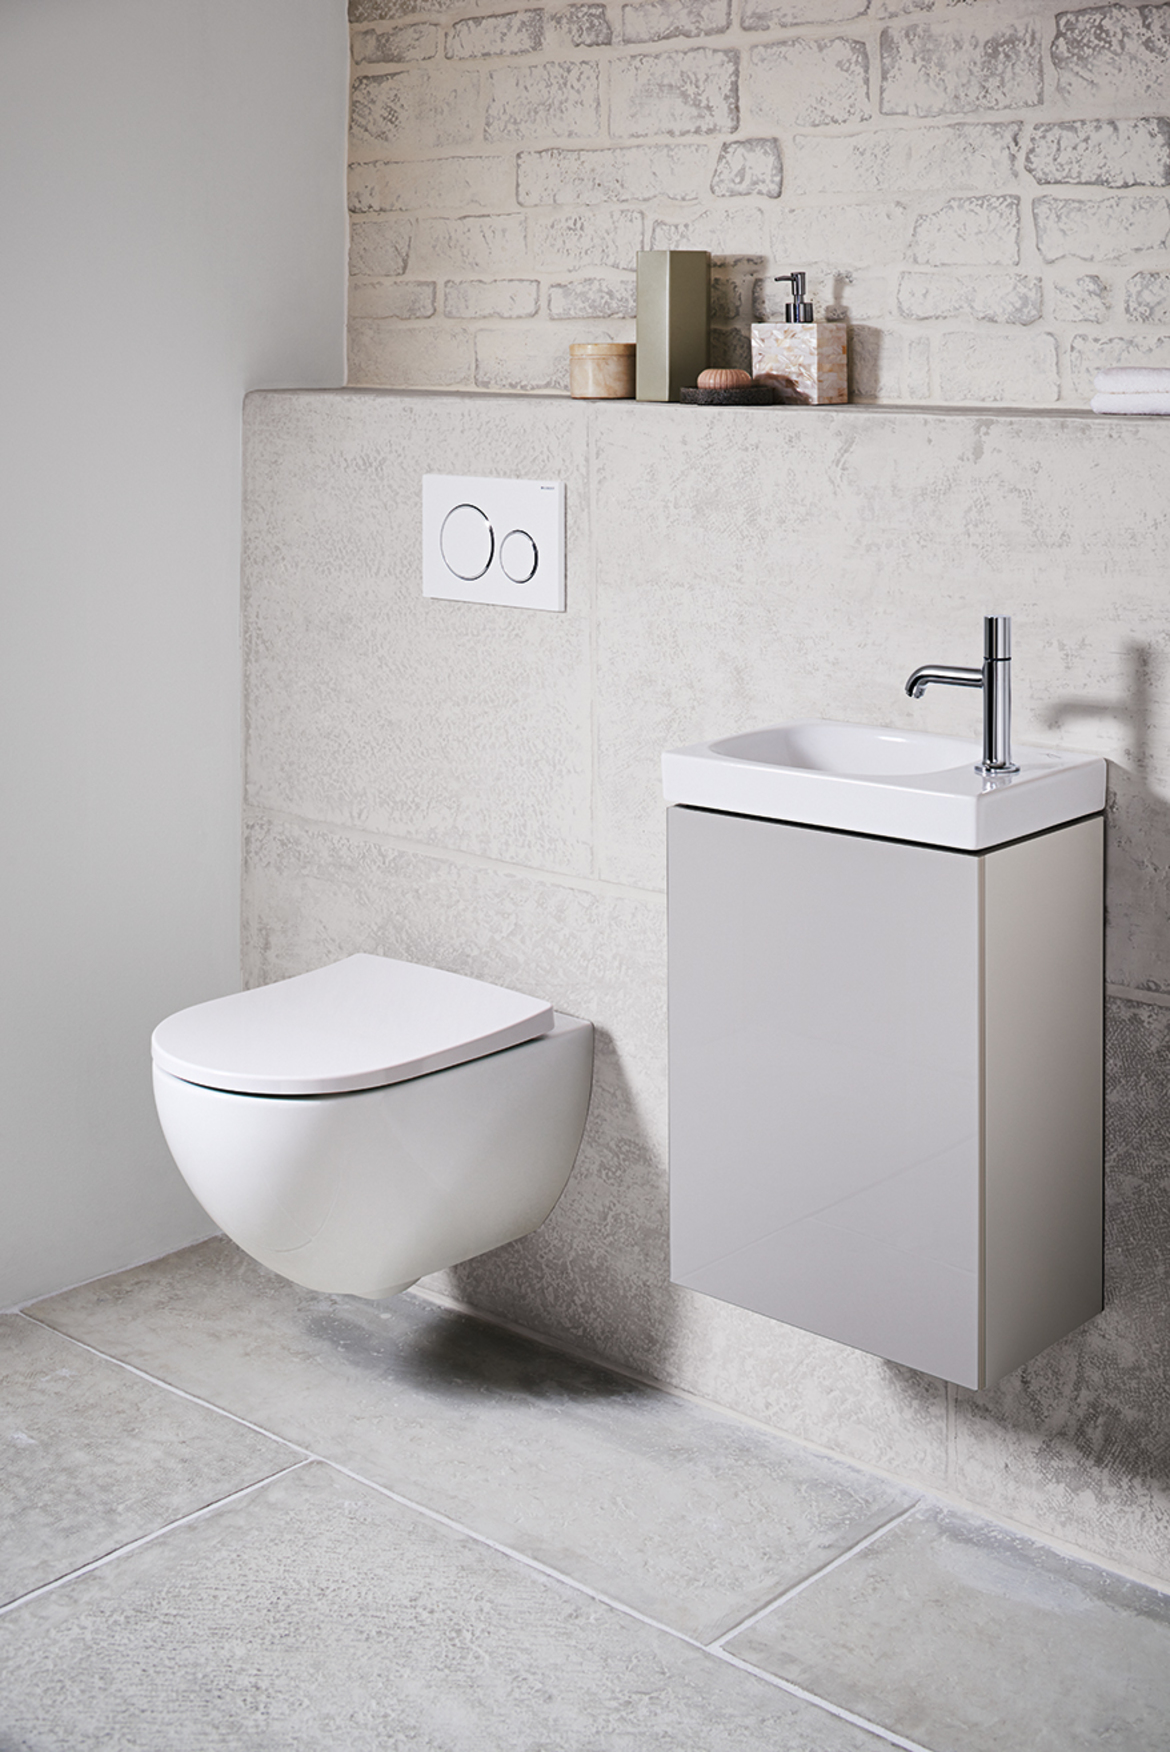 Geberit In Wall Flush Toilet Tank System For Hung Concealed Cistern